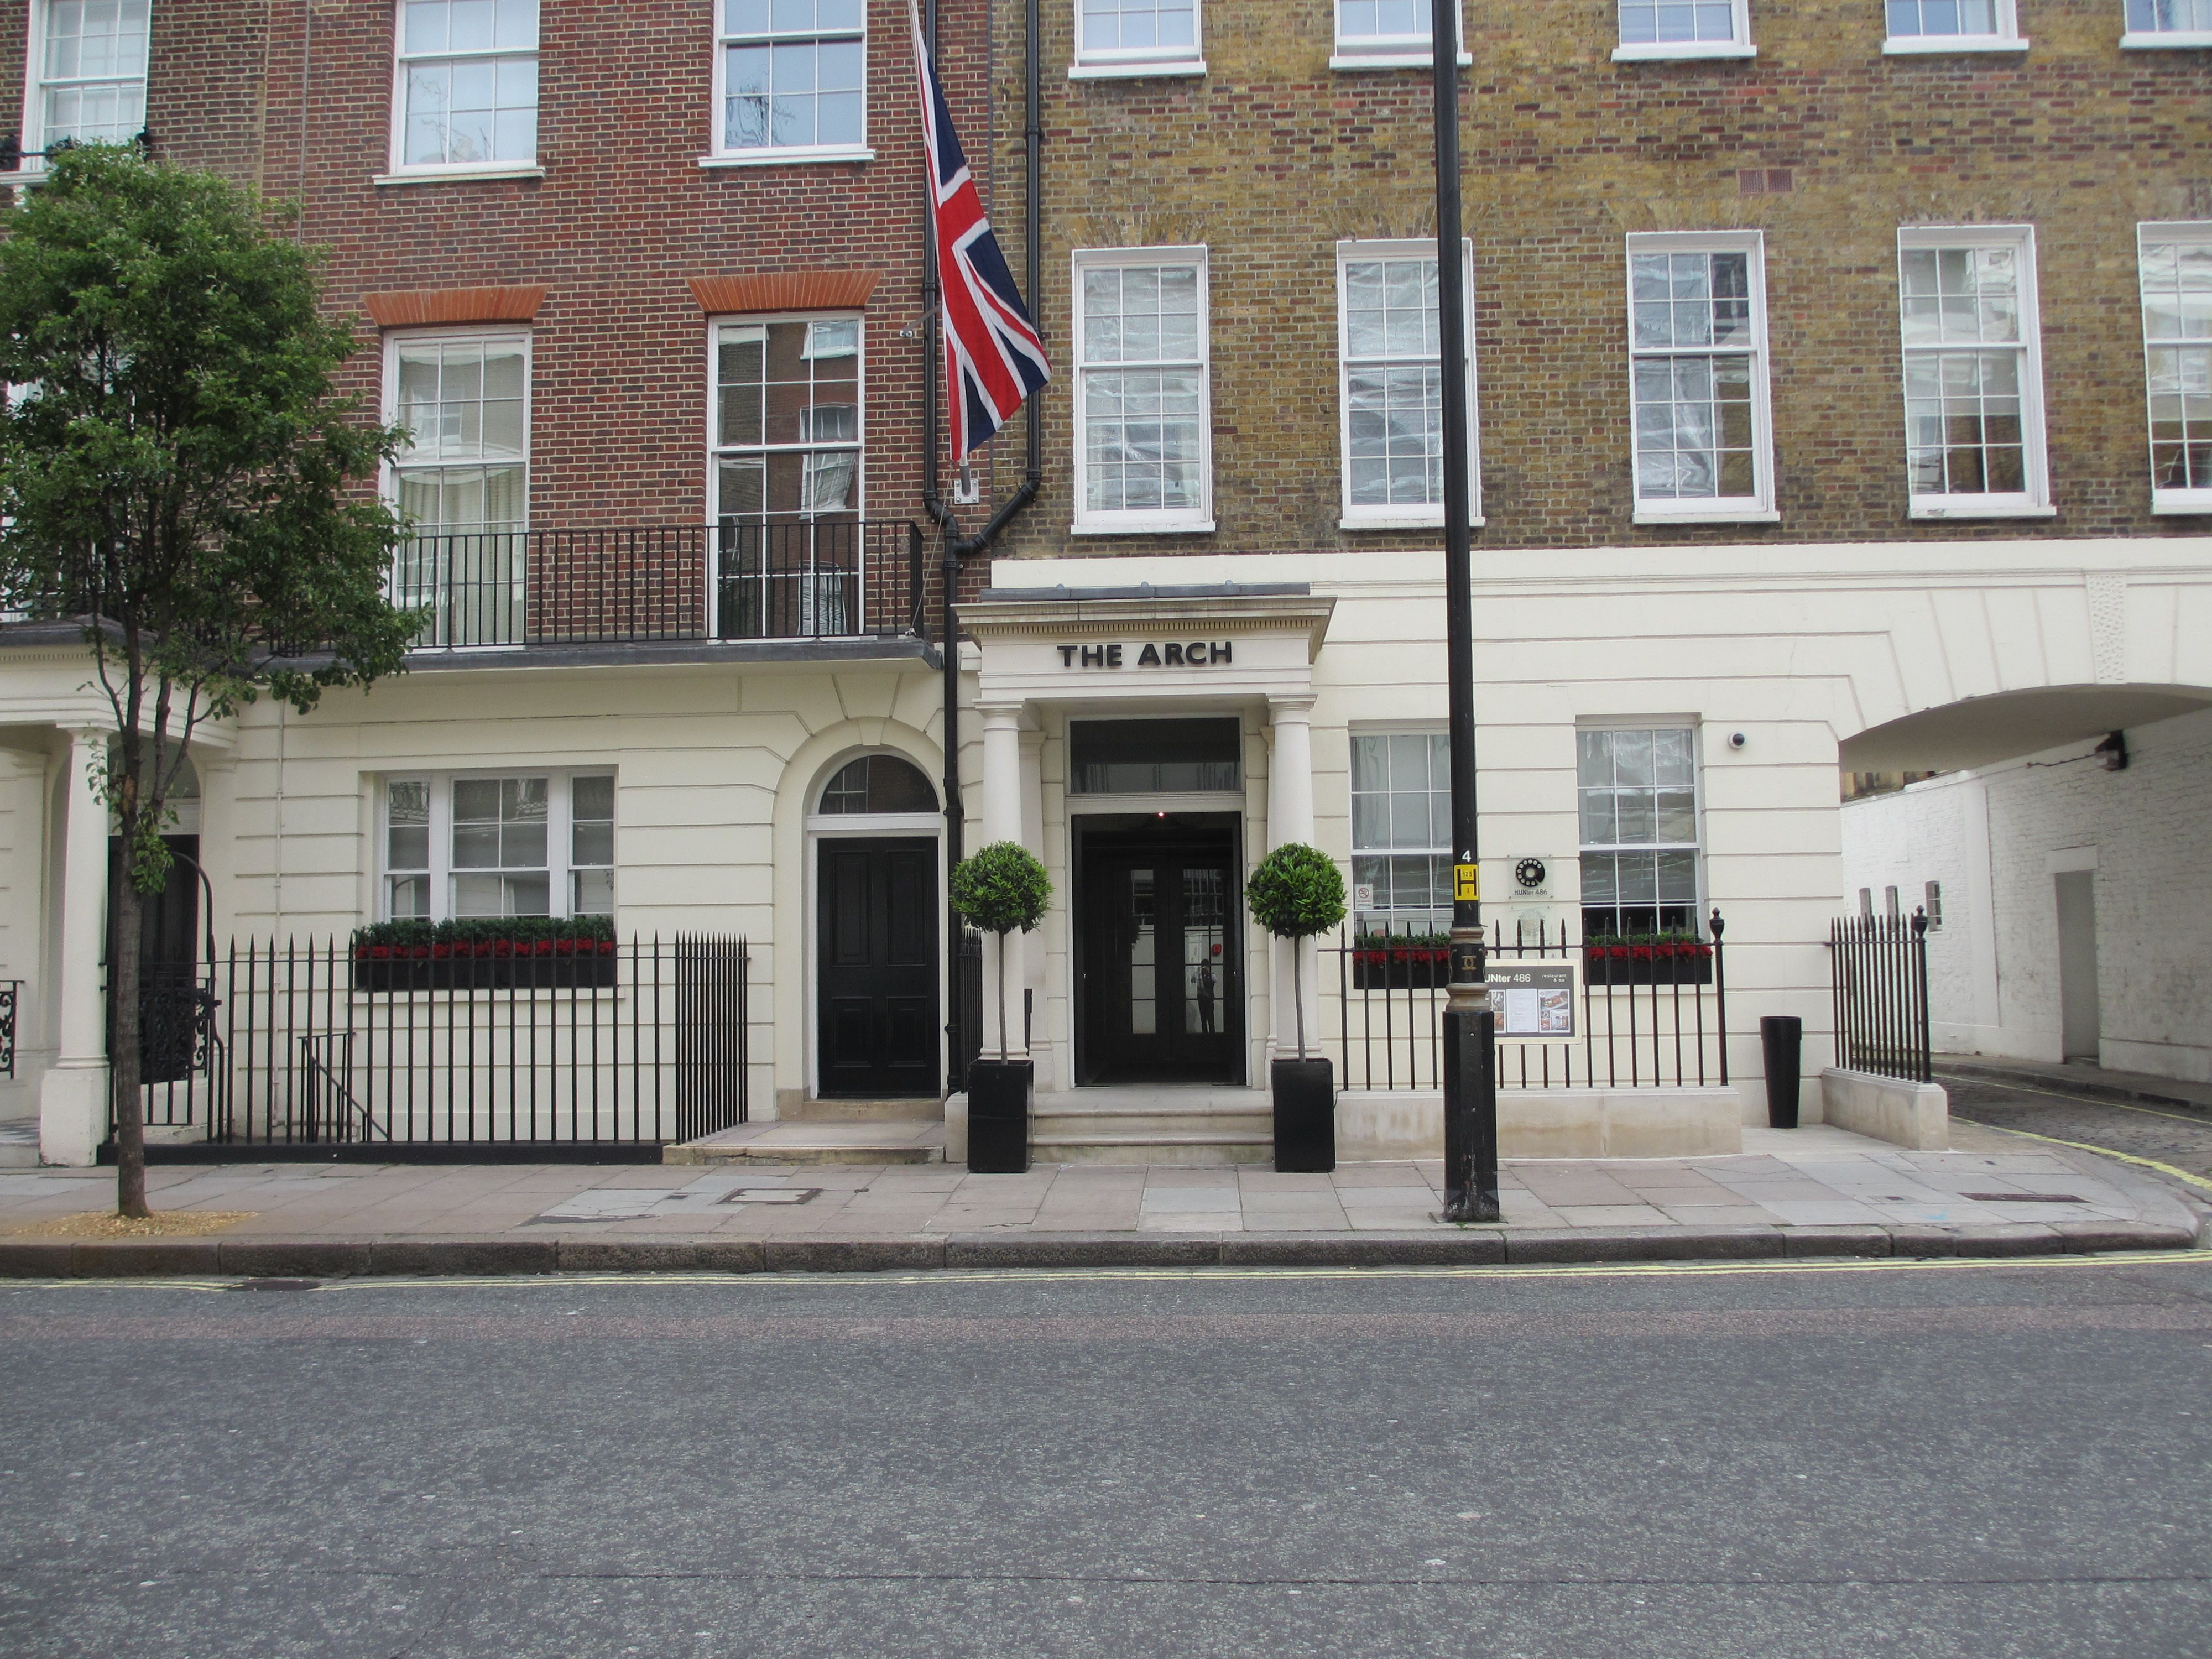 The Arch Hotel Brilliant Boutique In Marylebone Http Www Thearchlondon London 062017